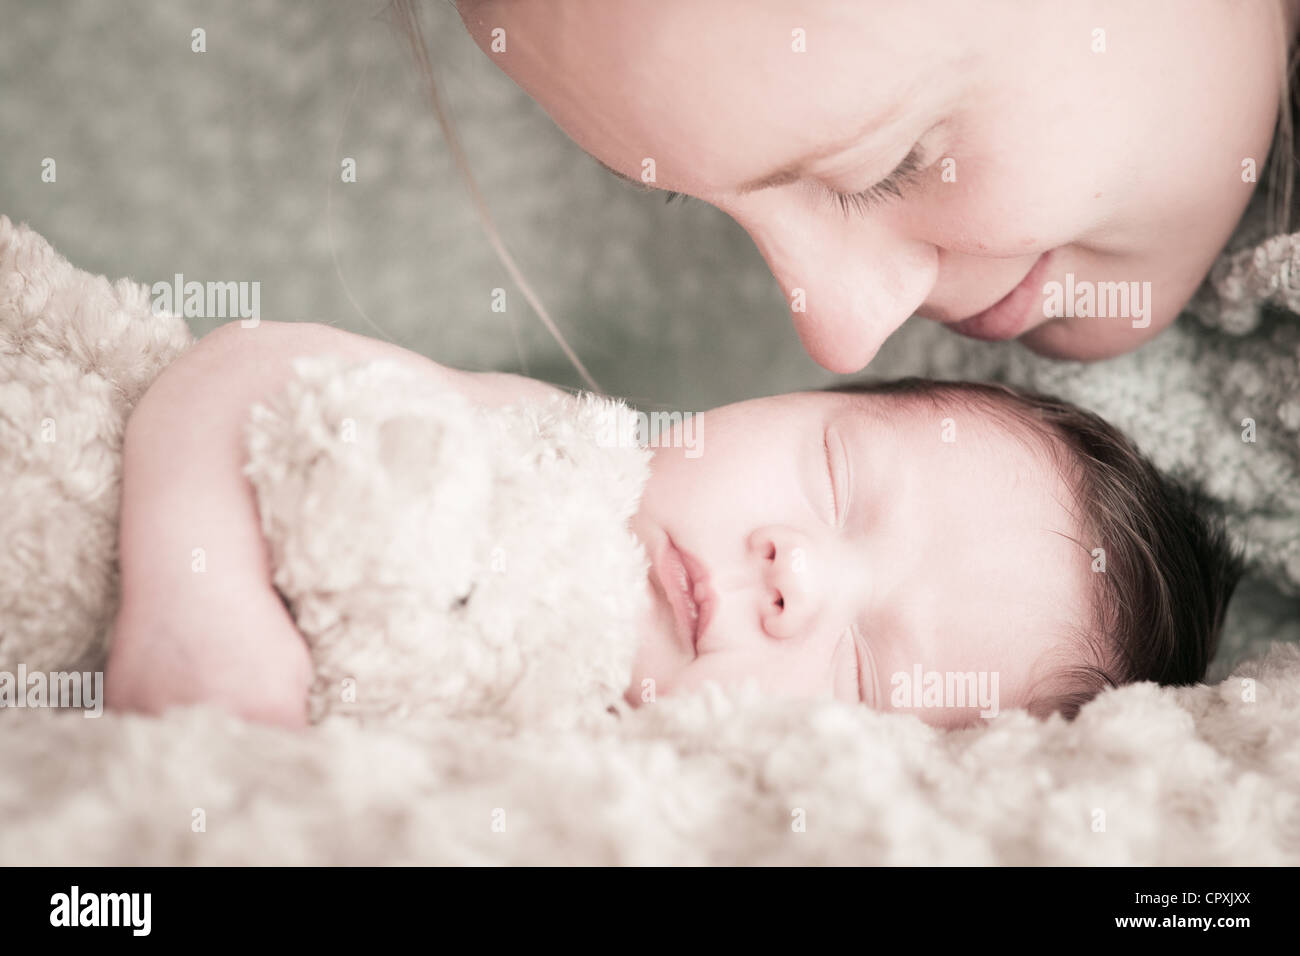 mother leans over newborn baby to kiss - Stock Image